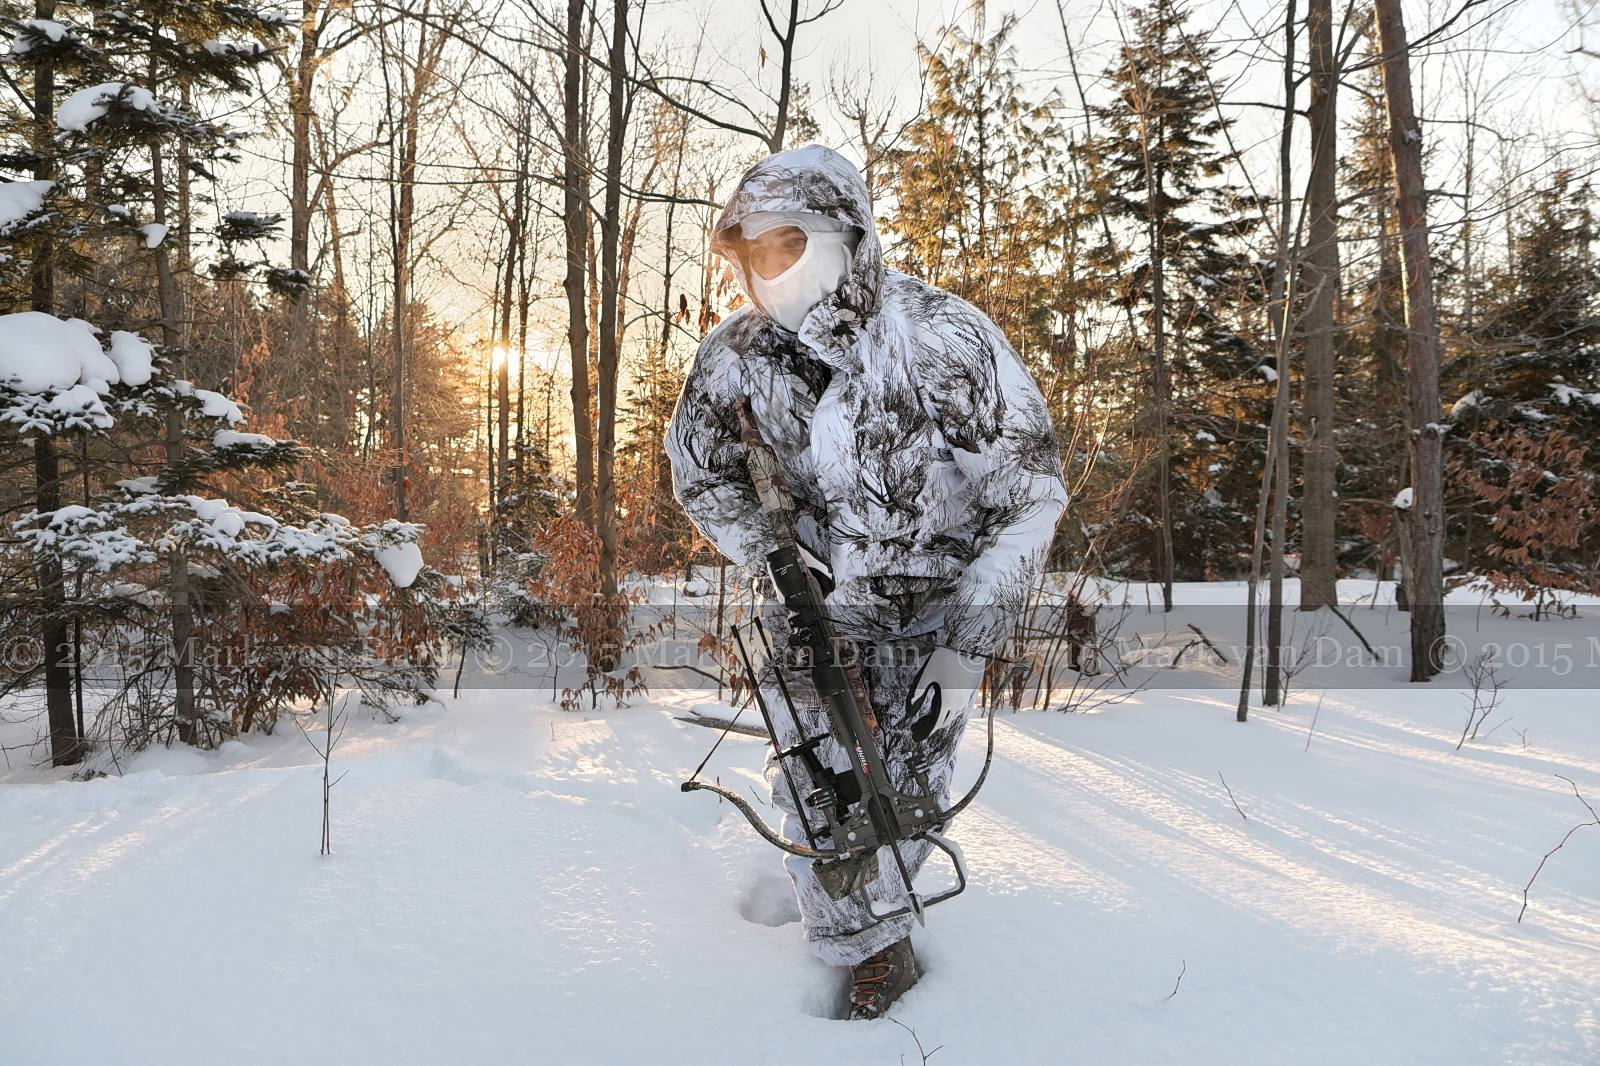 Winter Crossbow Photography, still hunting in deep snow with snow camo